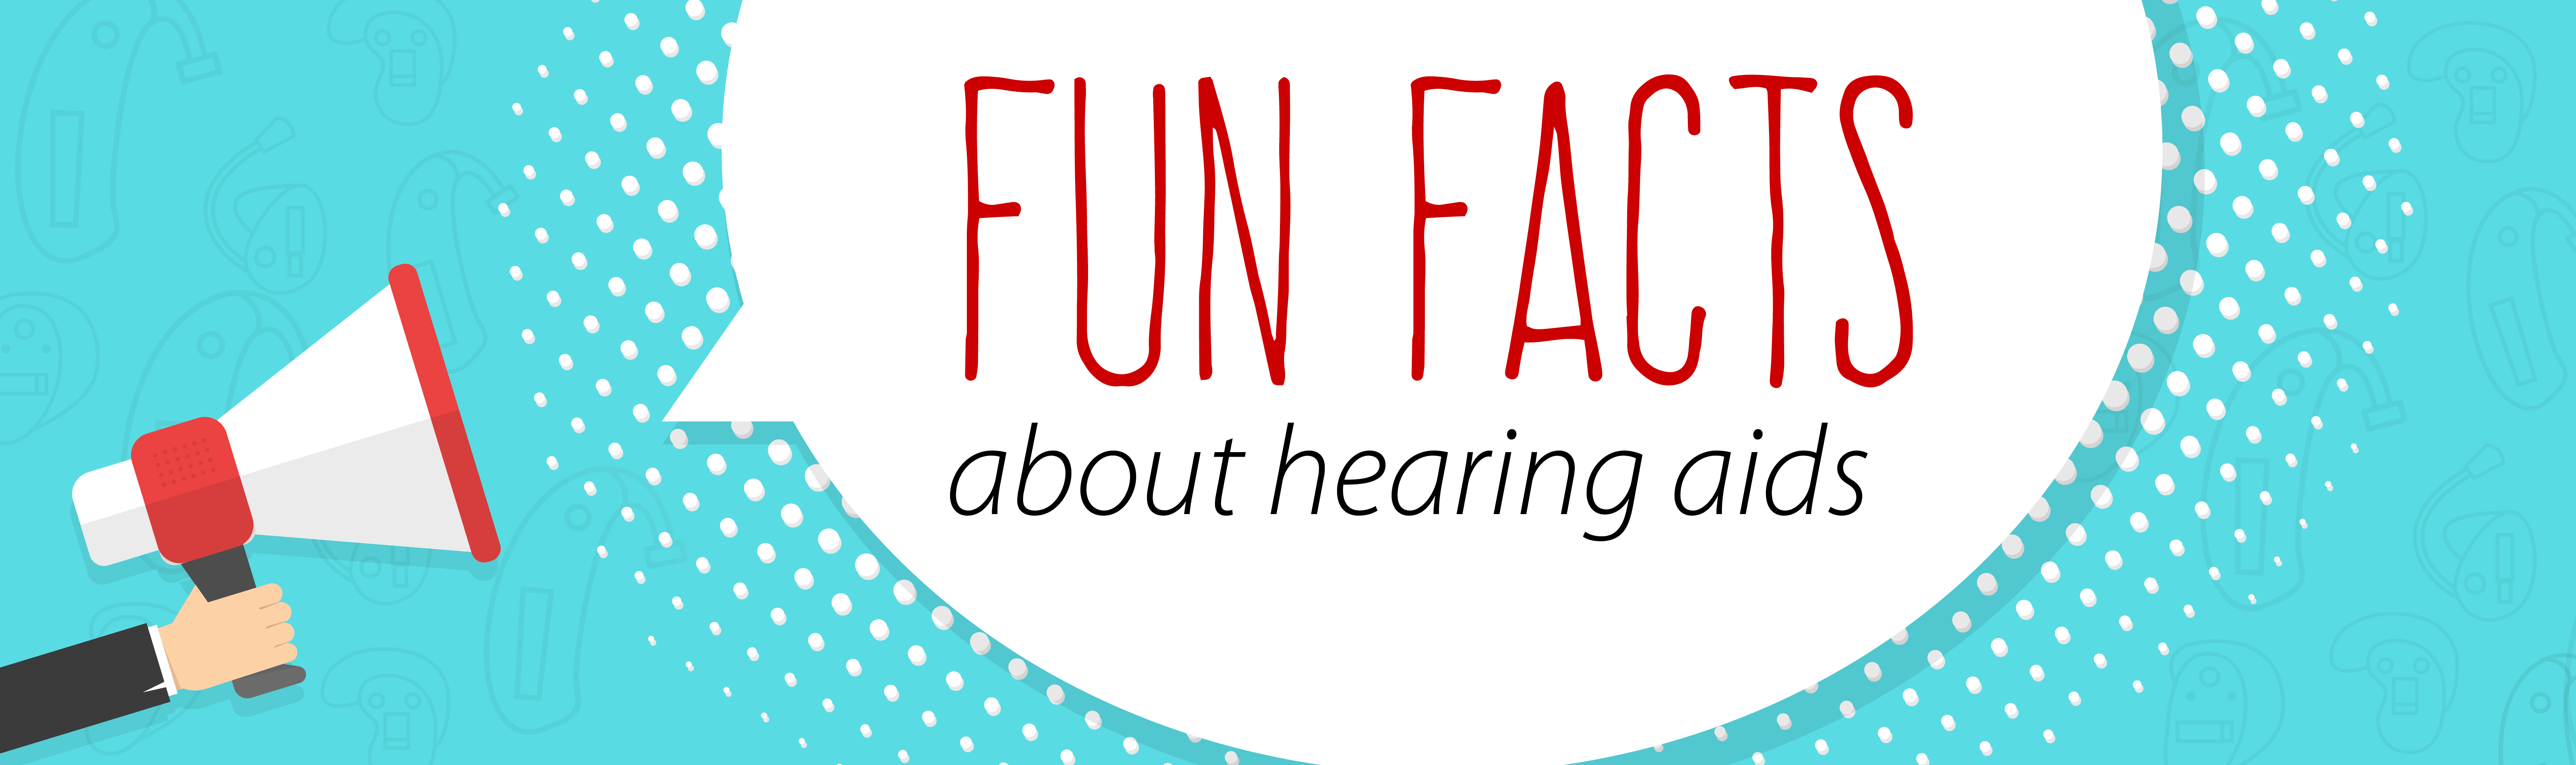 5 Fun Facts About Hearing Aids